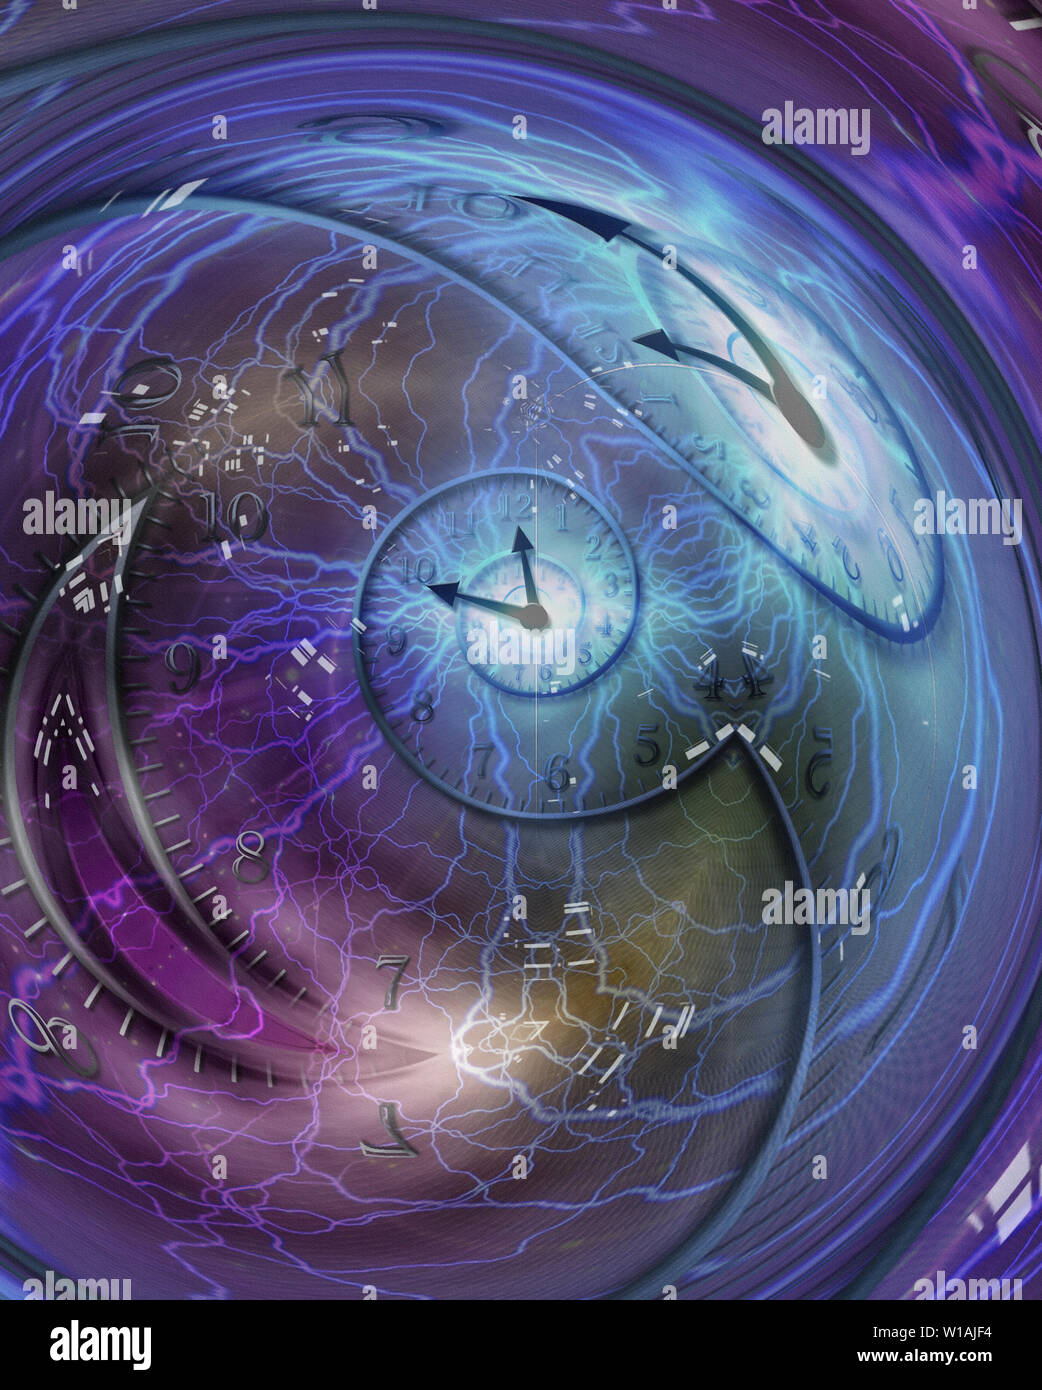 Space Time Portal High Resolution Stock Photography and Images - Alamy